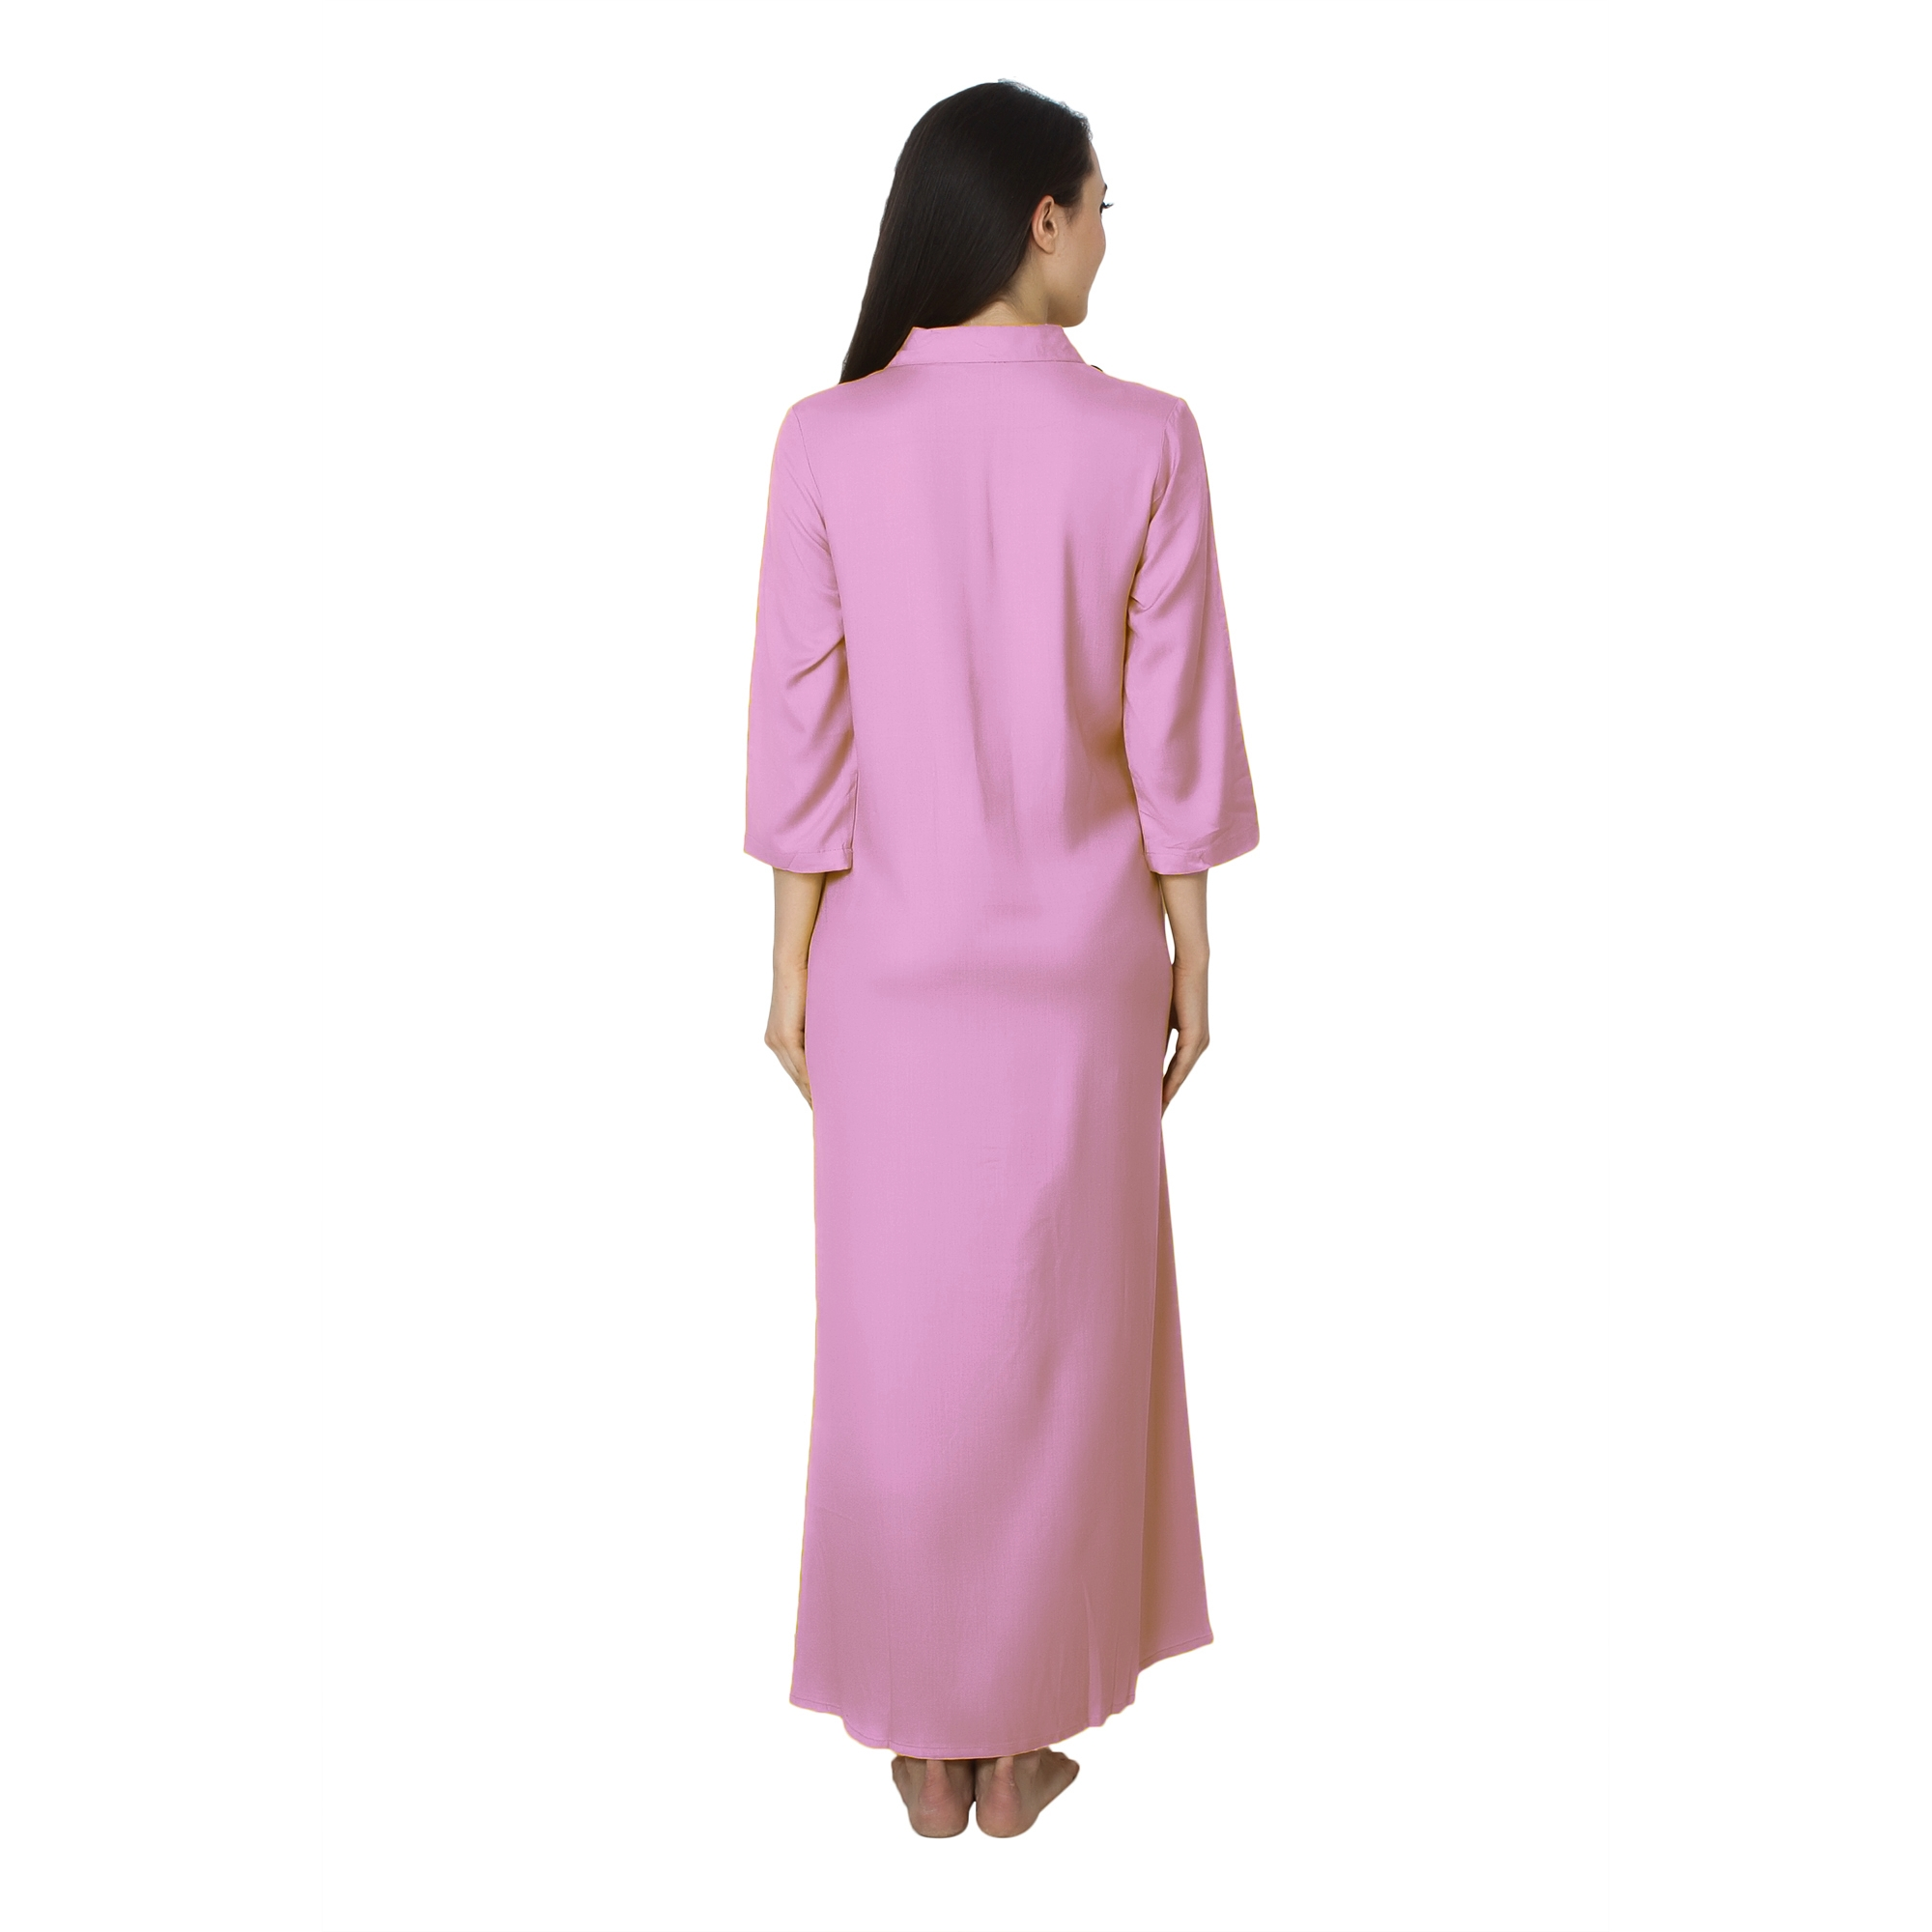 Shift Style ShirtDress in Baby Pink